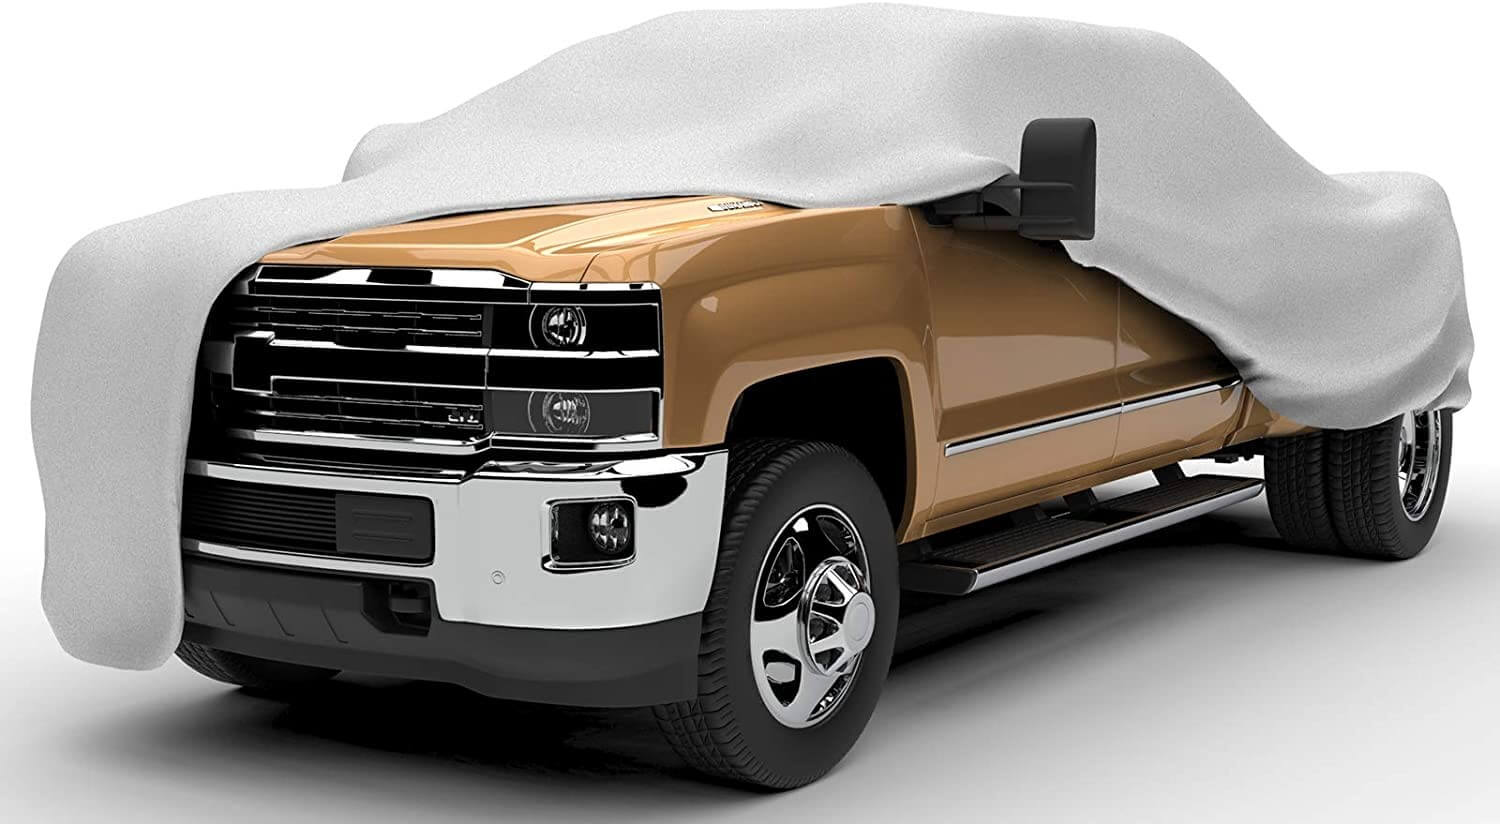 TD-4 Polypropylene, Gray Budge Duro Truck Cover Fits Trucks with Standard Cab Long Bed Pickups up to 228 inches